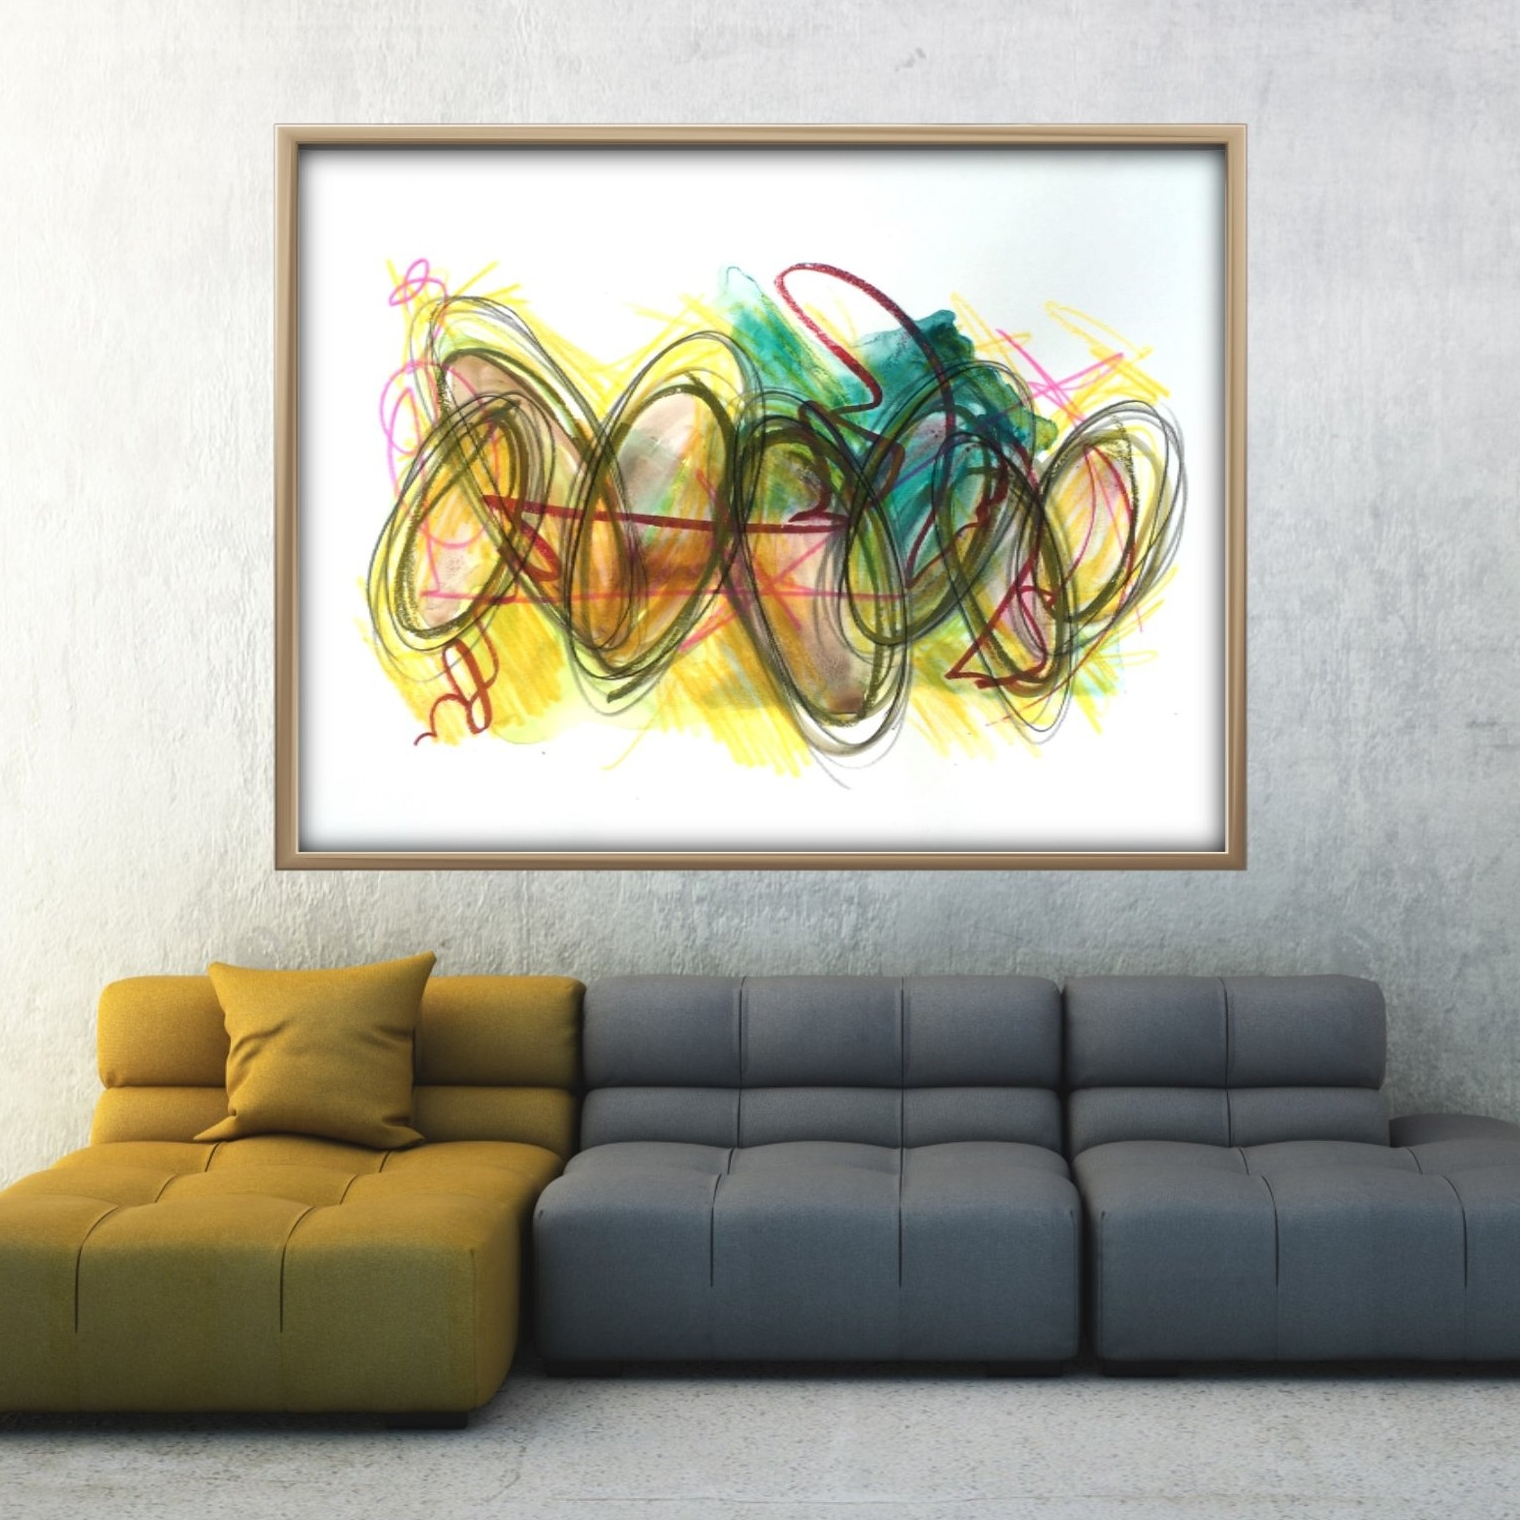 Affinity Large over Sofa ss.jpg